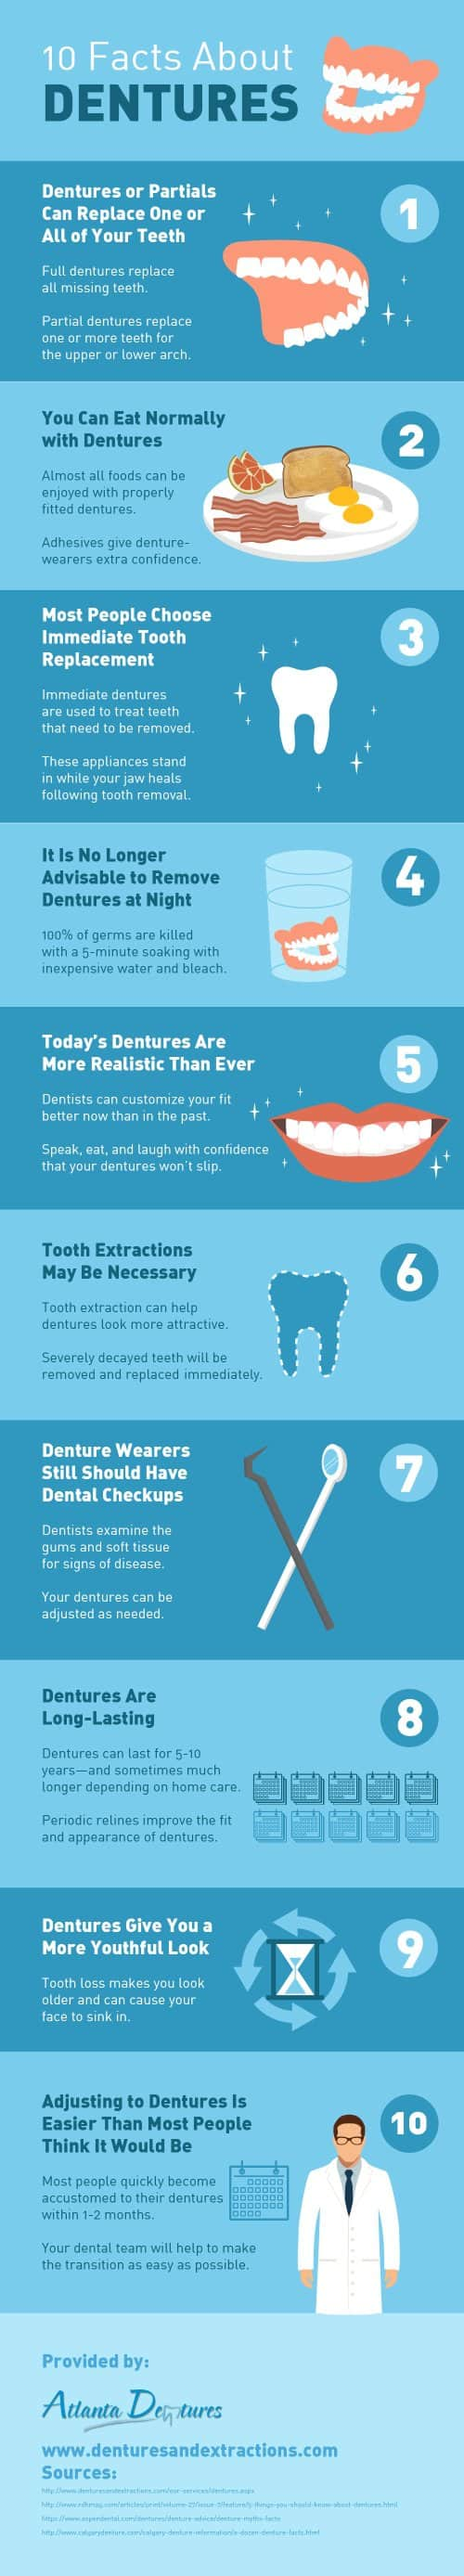 10 Facts About Dentures by Atlanta Dentures